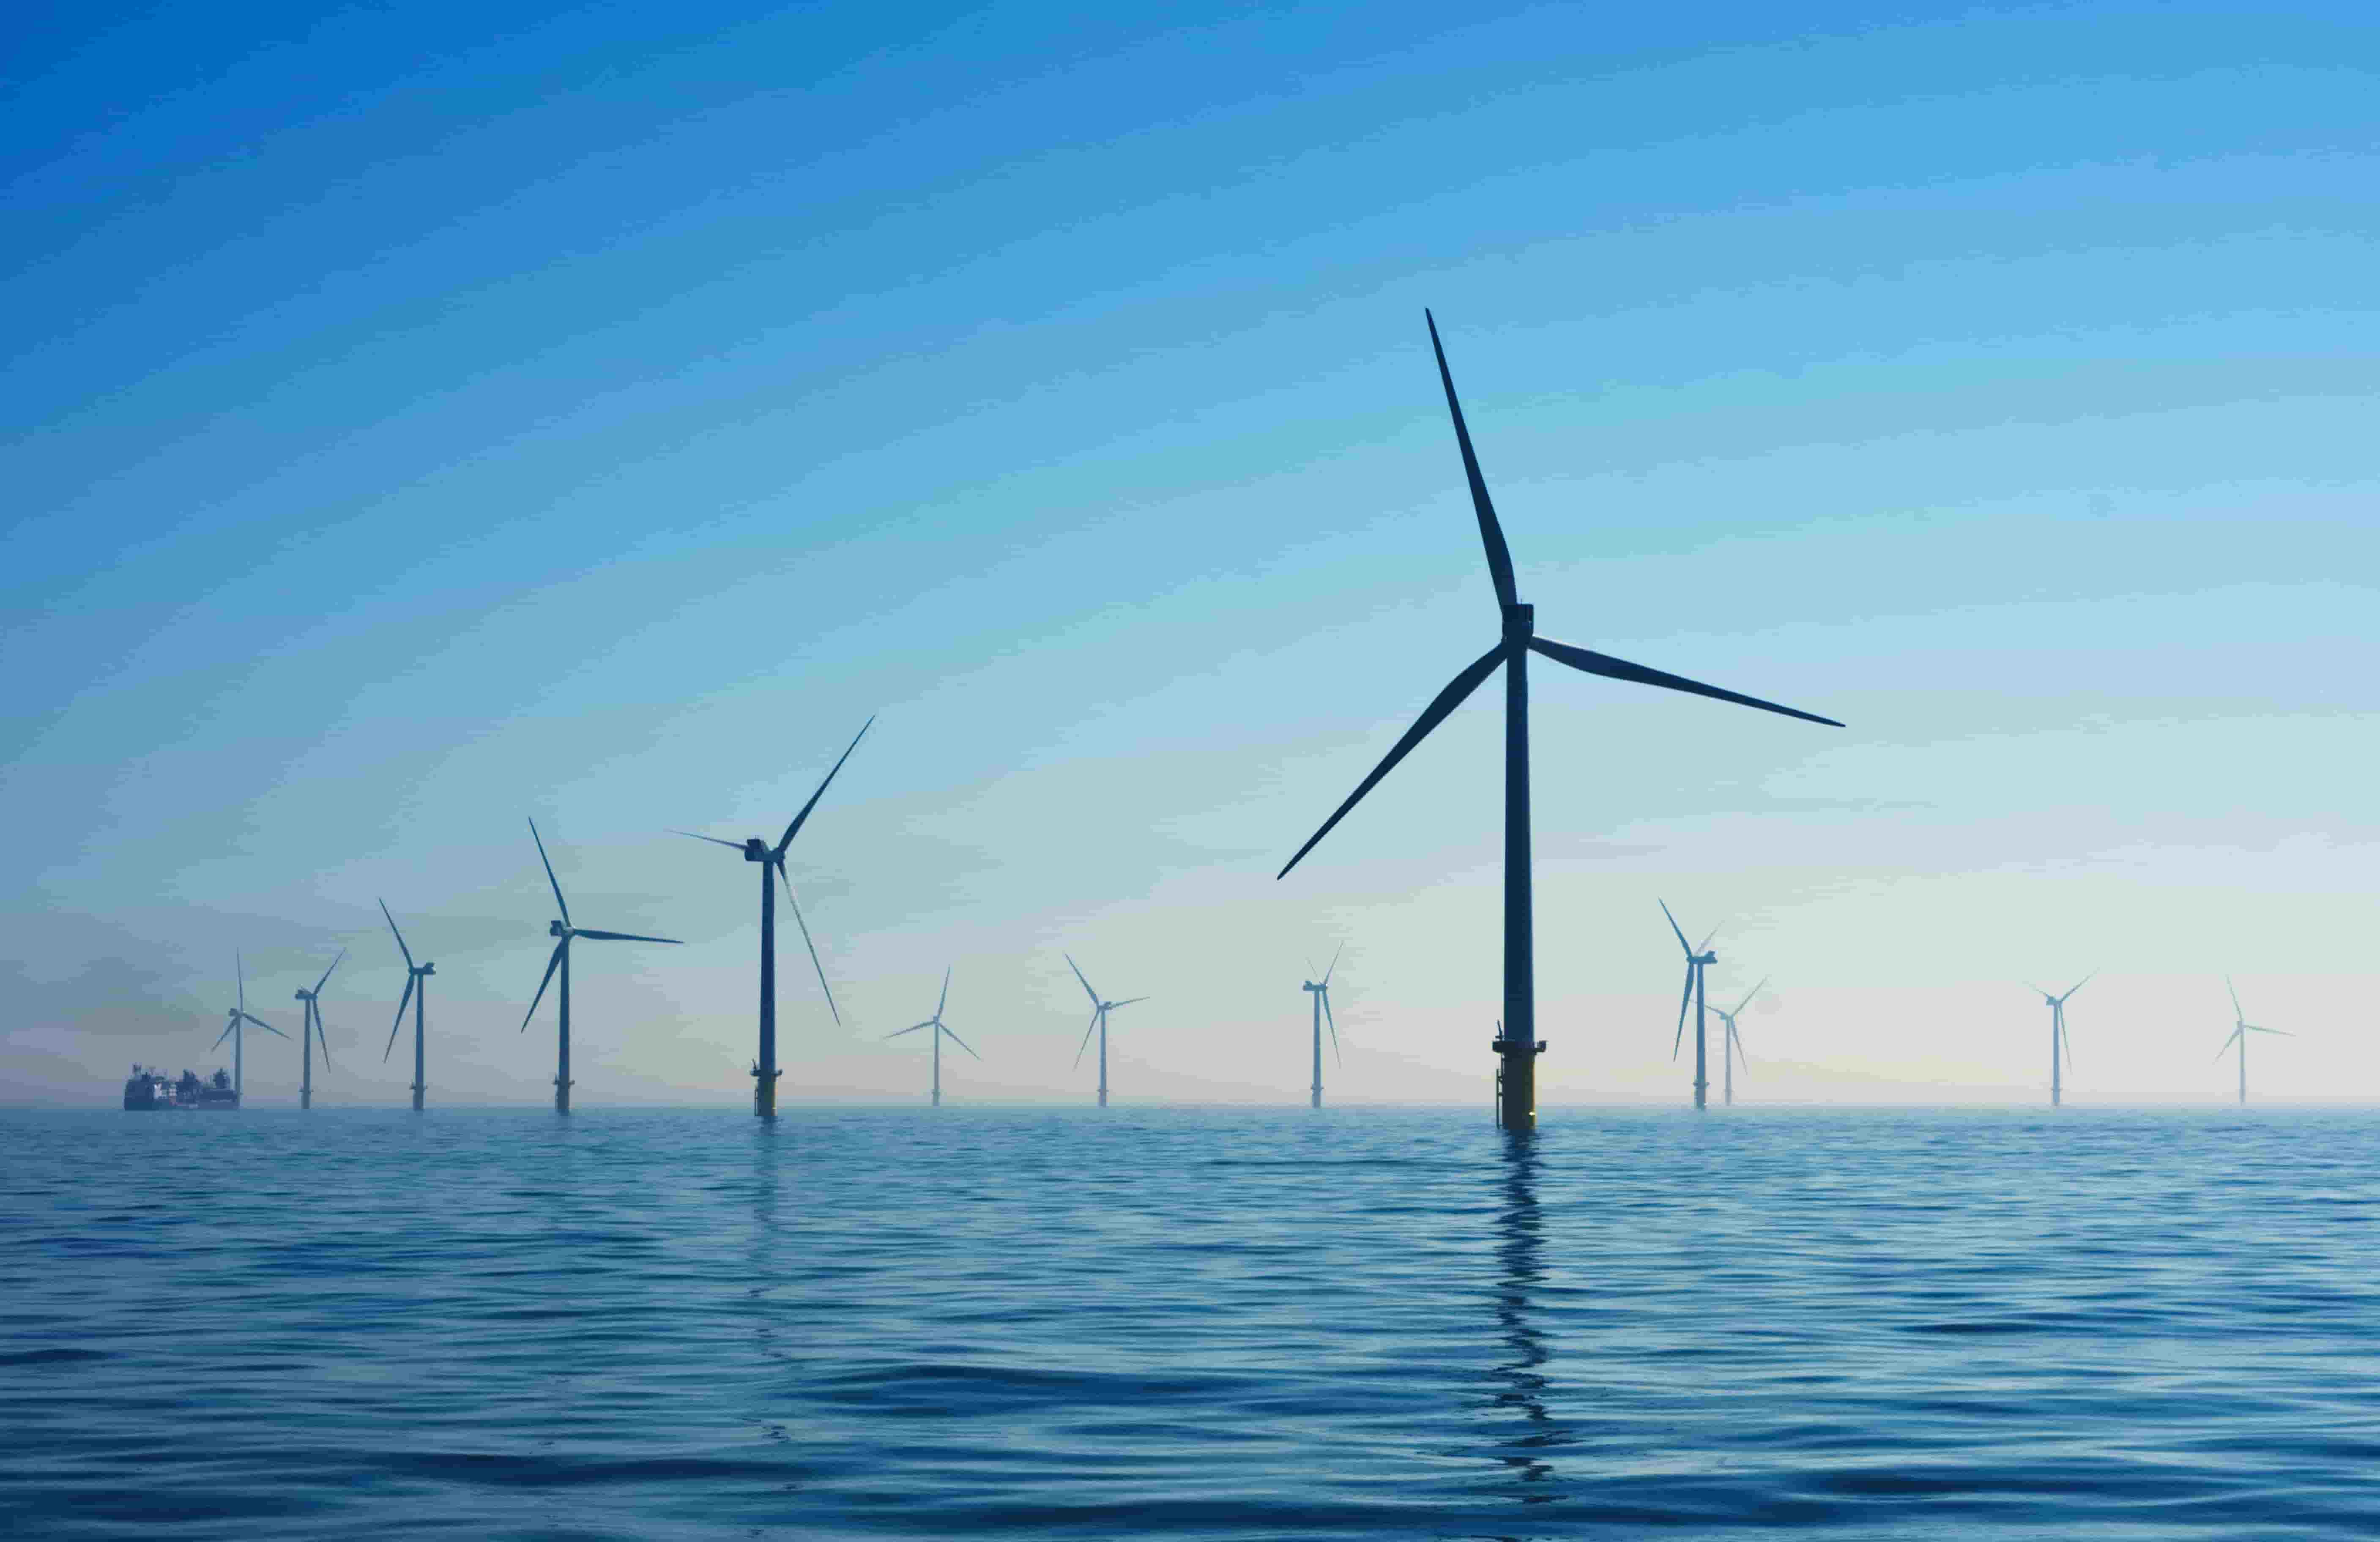 Shell entering Brazil's offshore wind power market 'a matter of time'